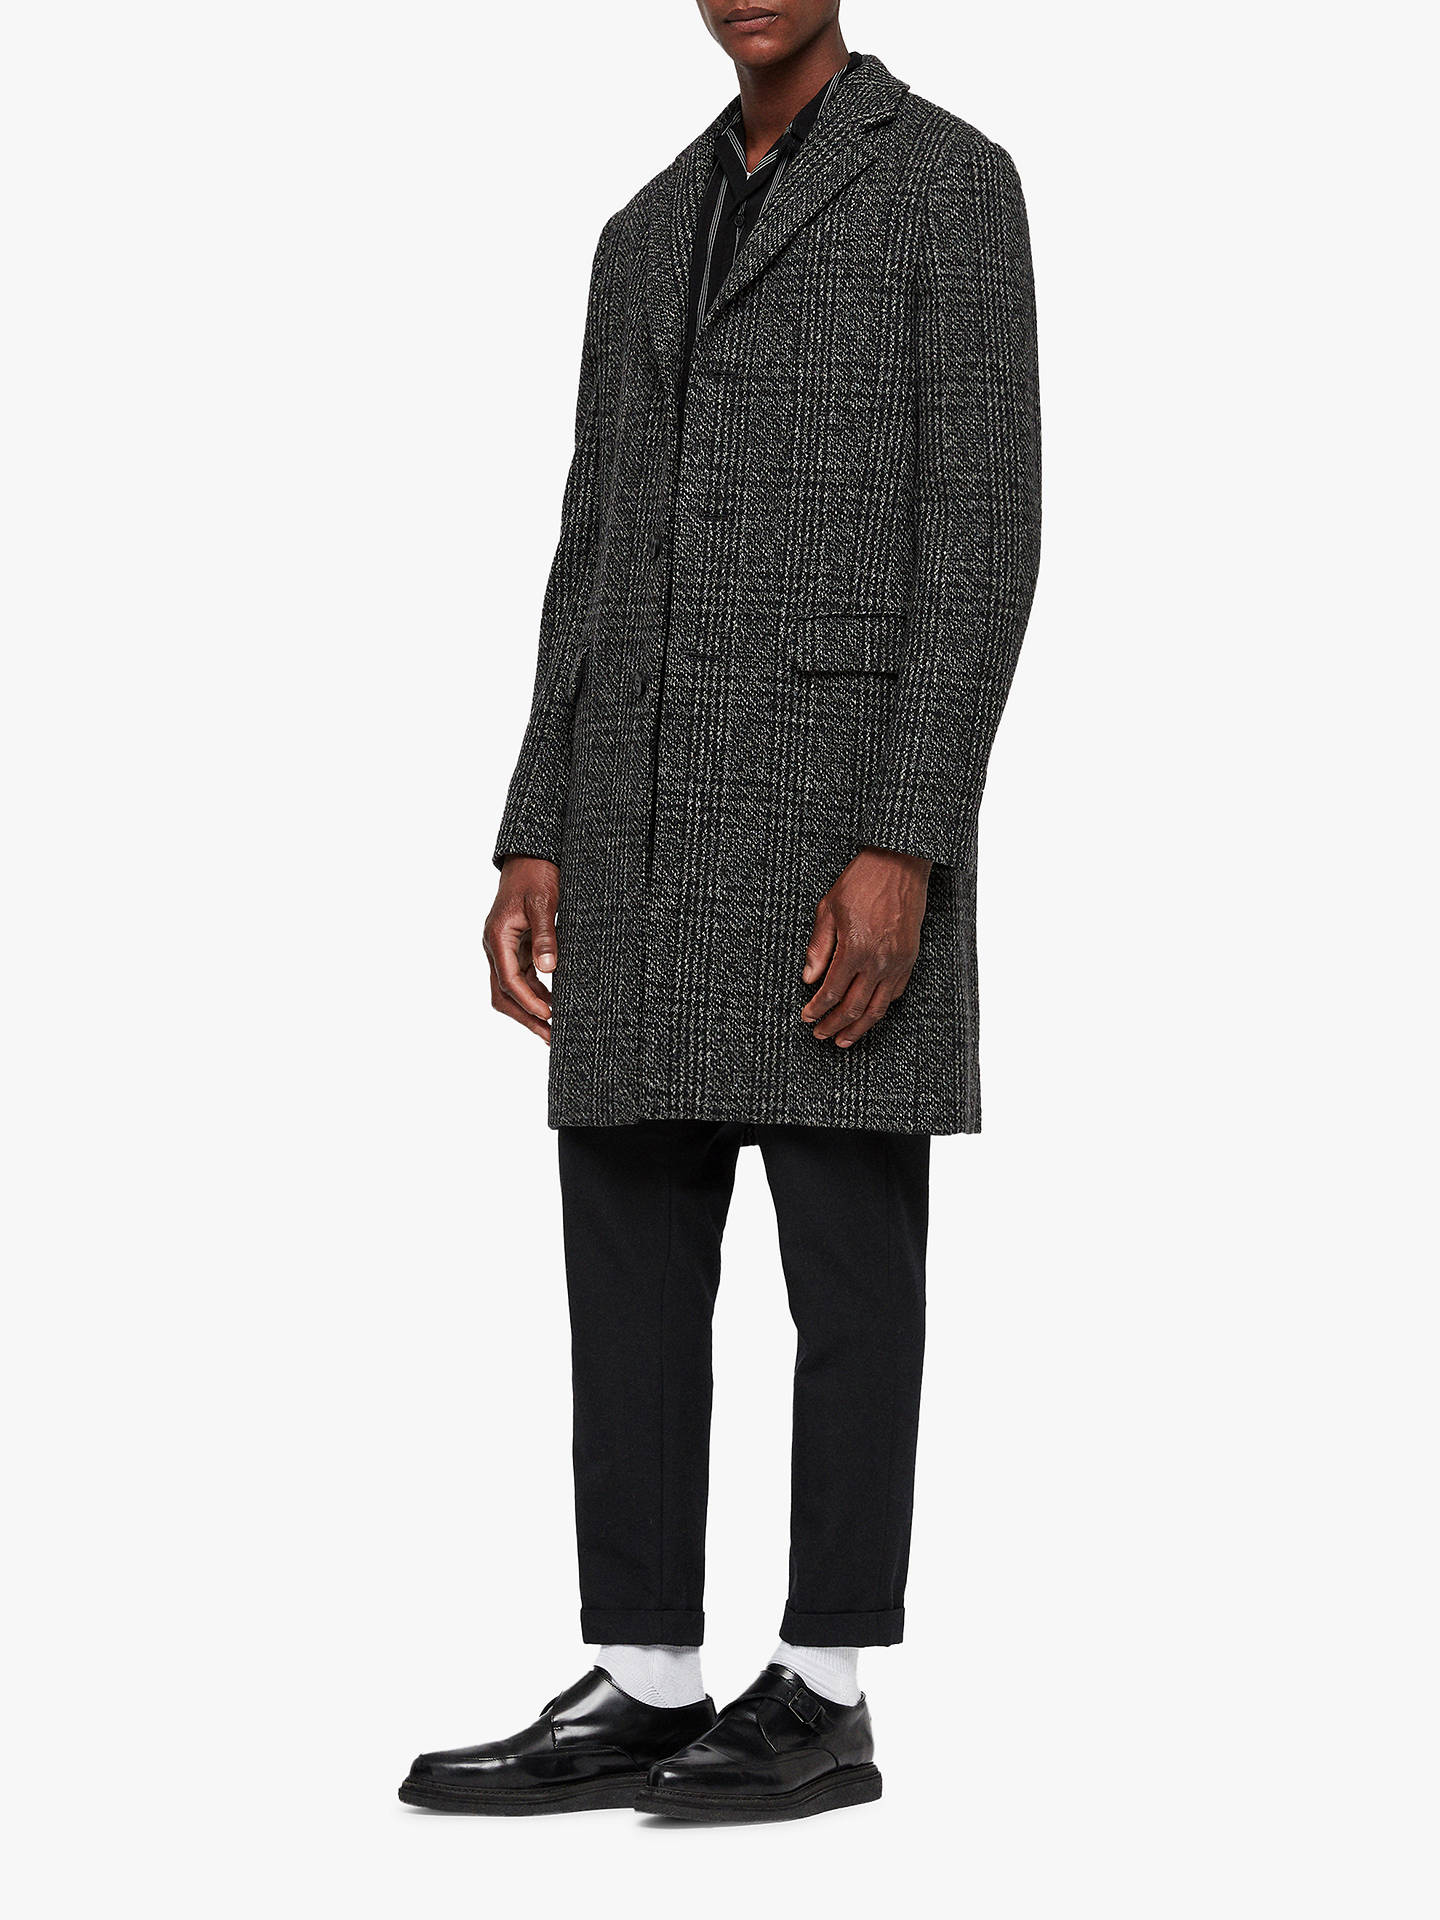 Buy AllSaints Dowell Herringbone Wool Coat, Black/Charcoal, 34R Online at johnlewis.com